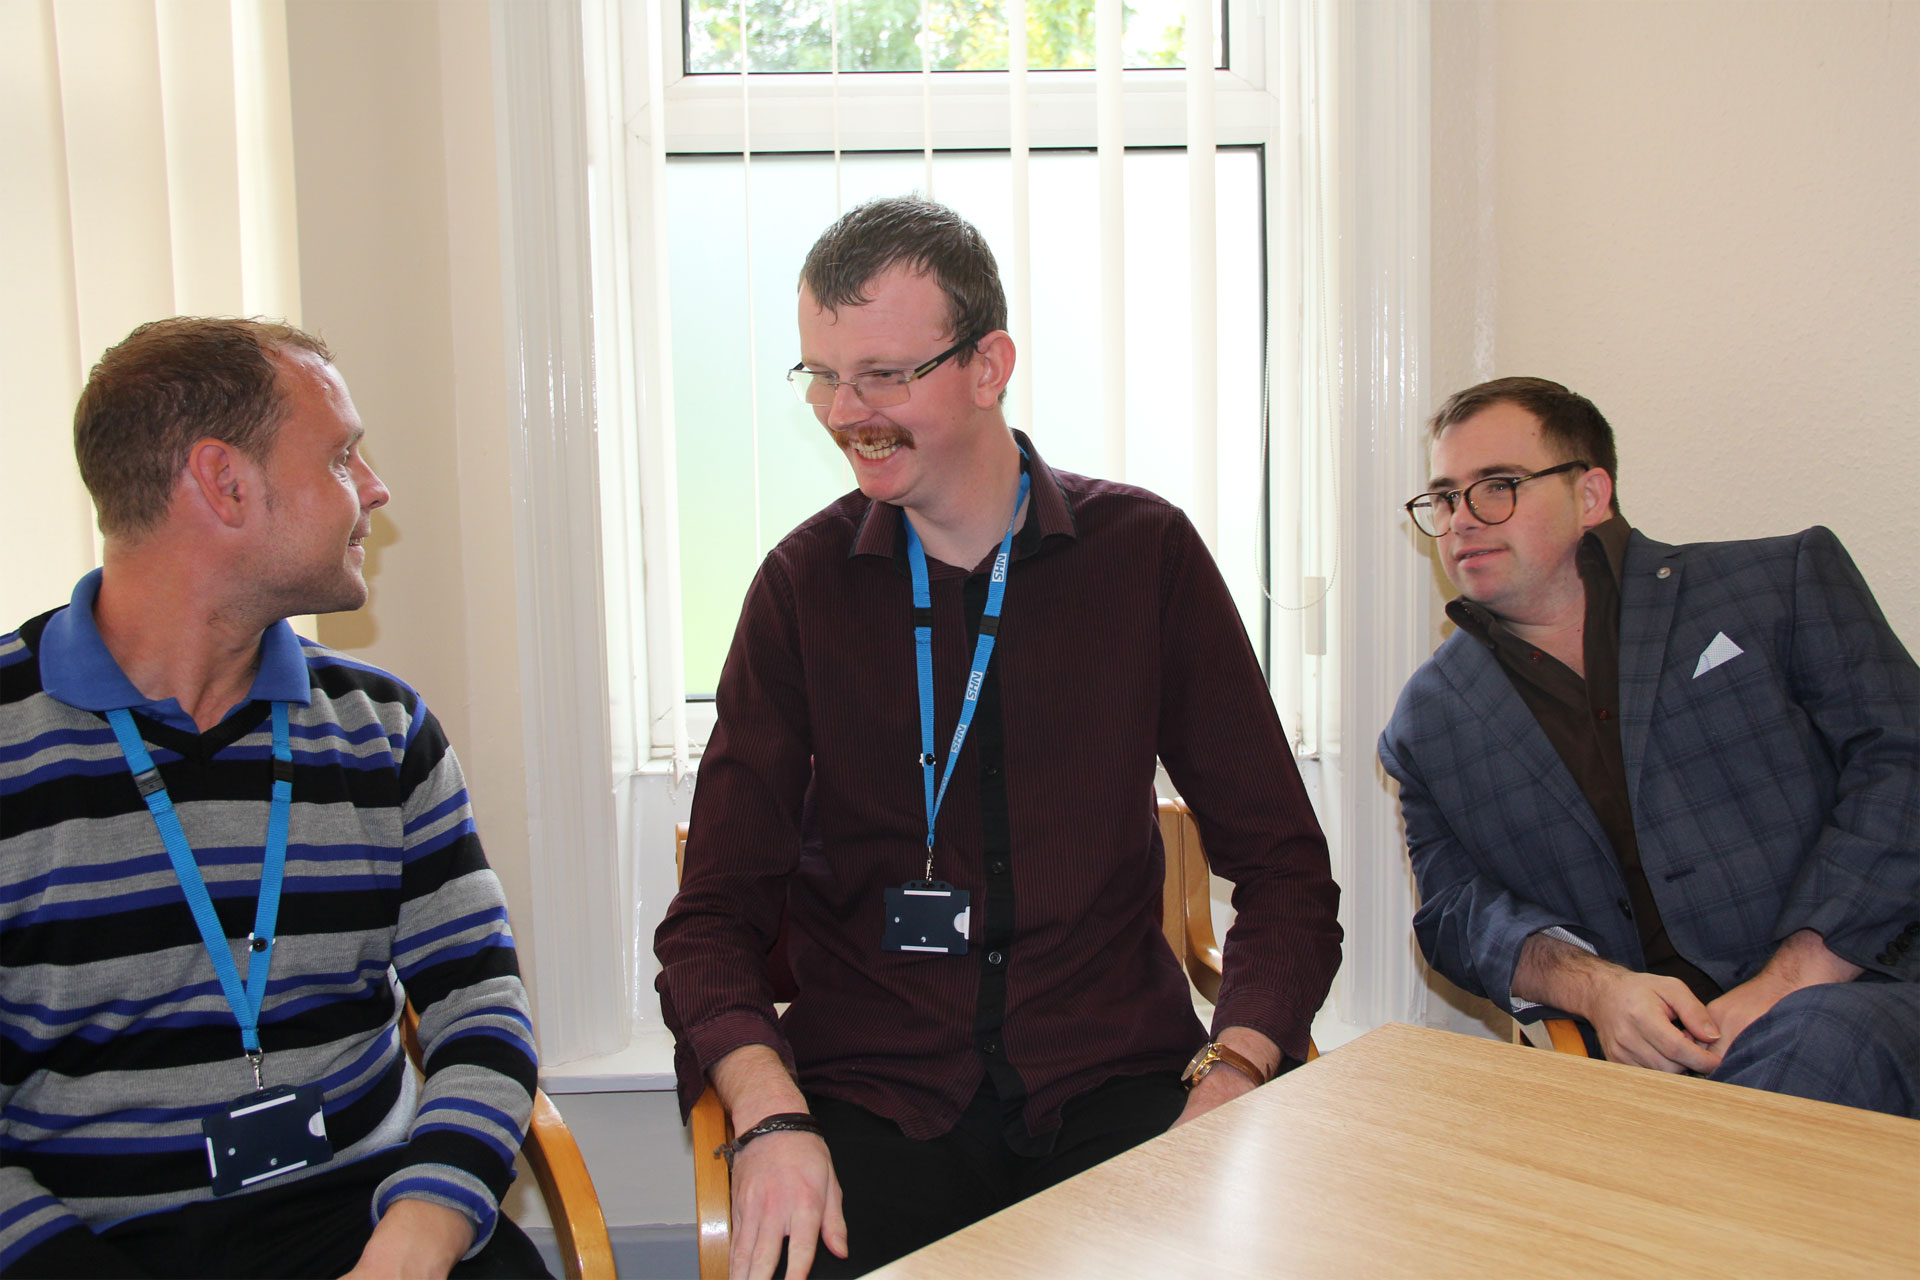 three-learning-disabilities-colleagues-sitting-talking-smiling.JPG